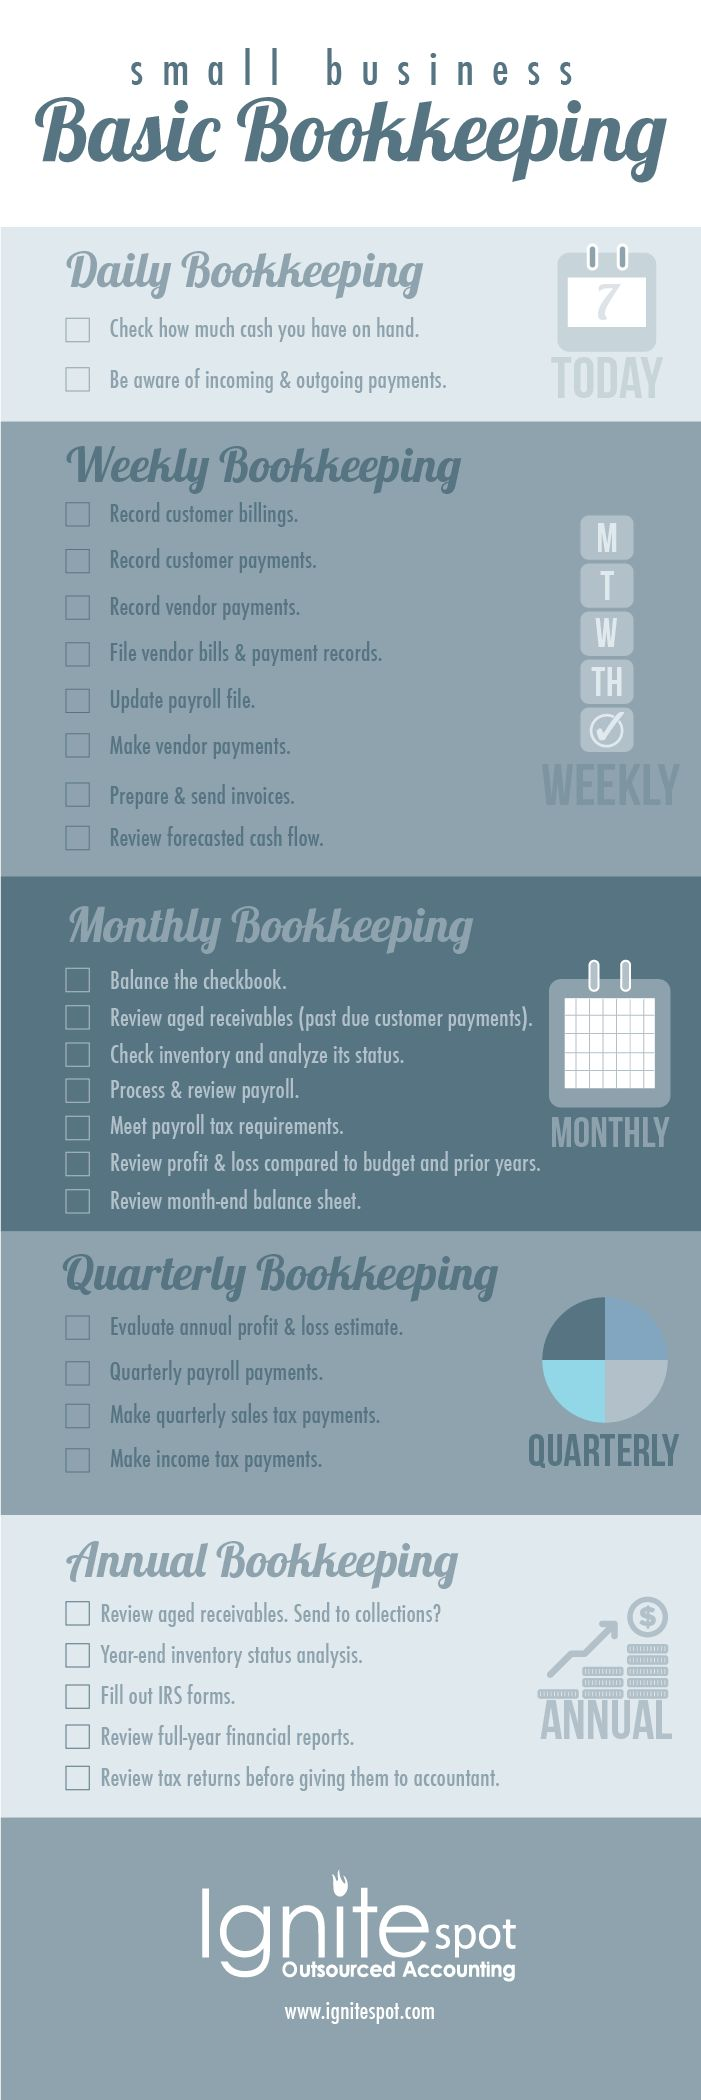 Basic bookkeeping check list for a small business!